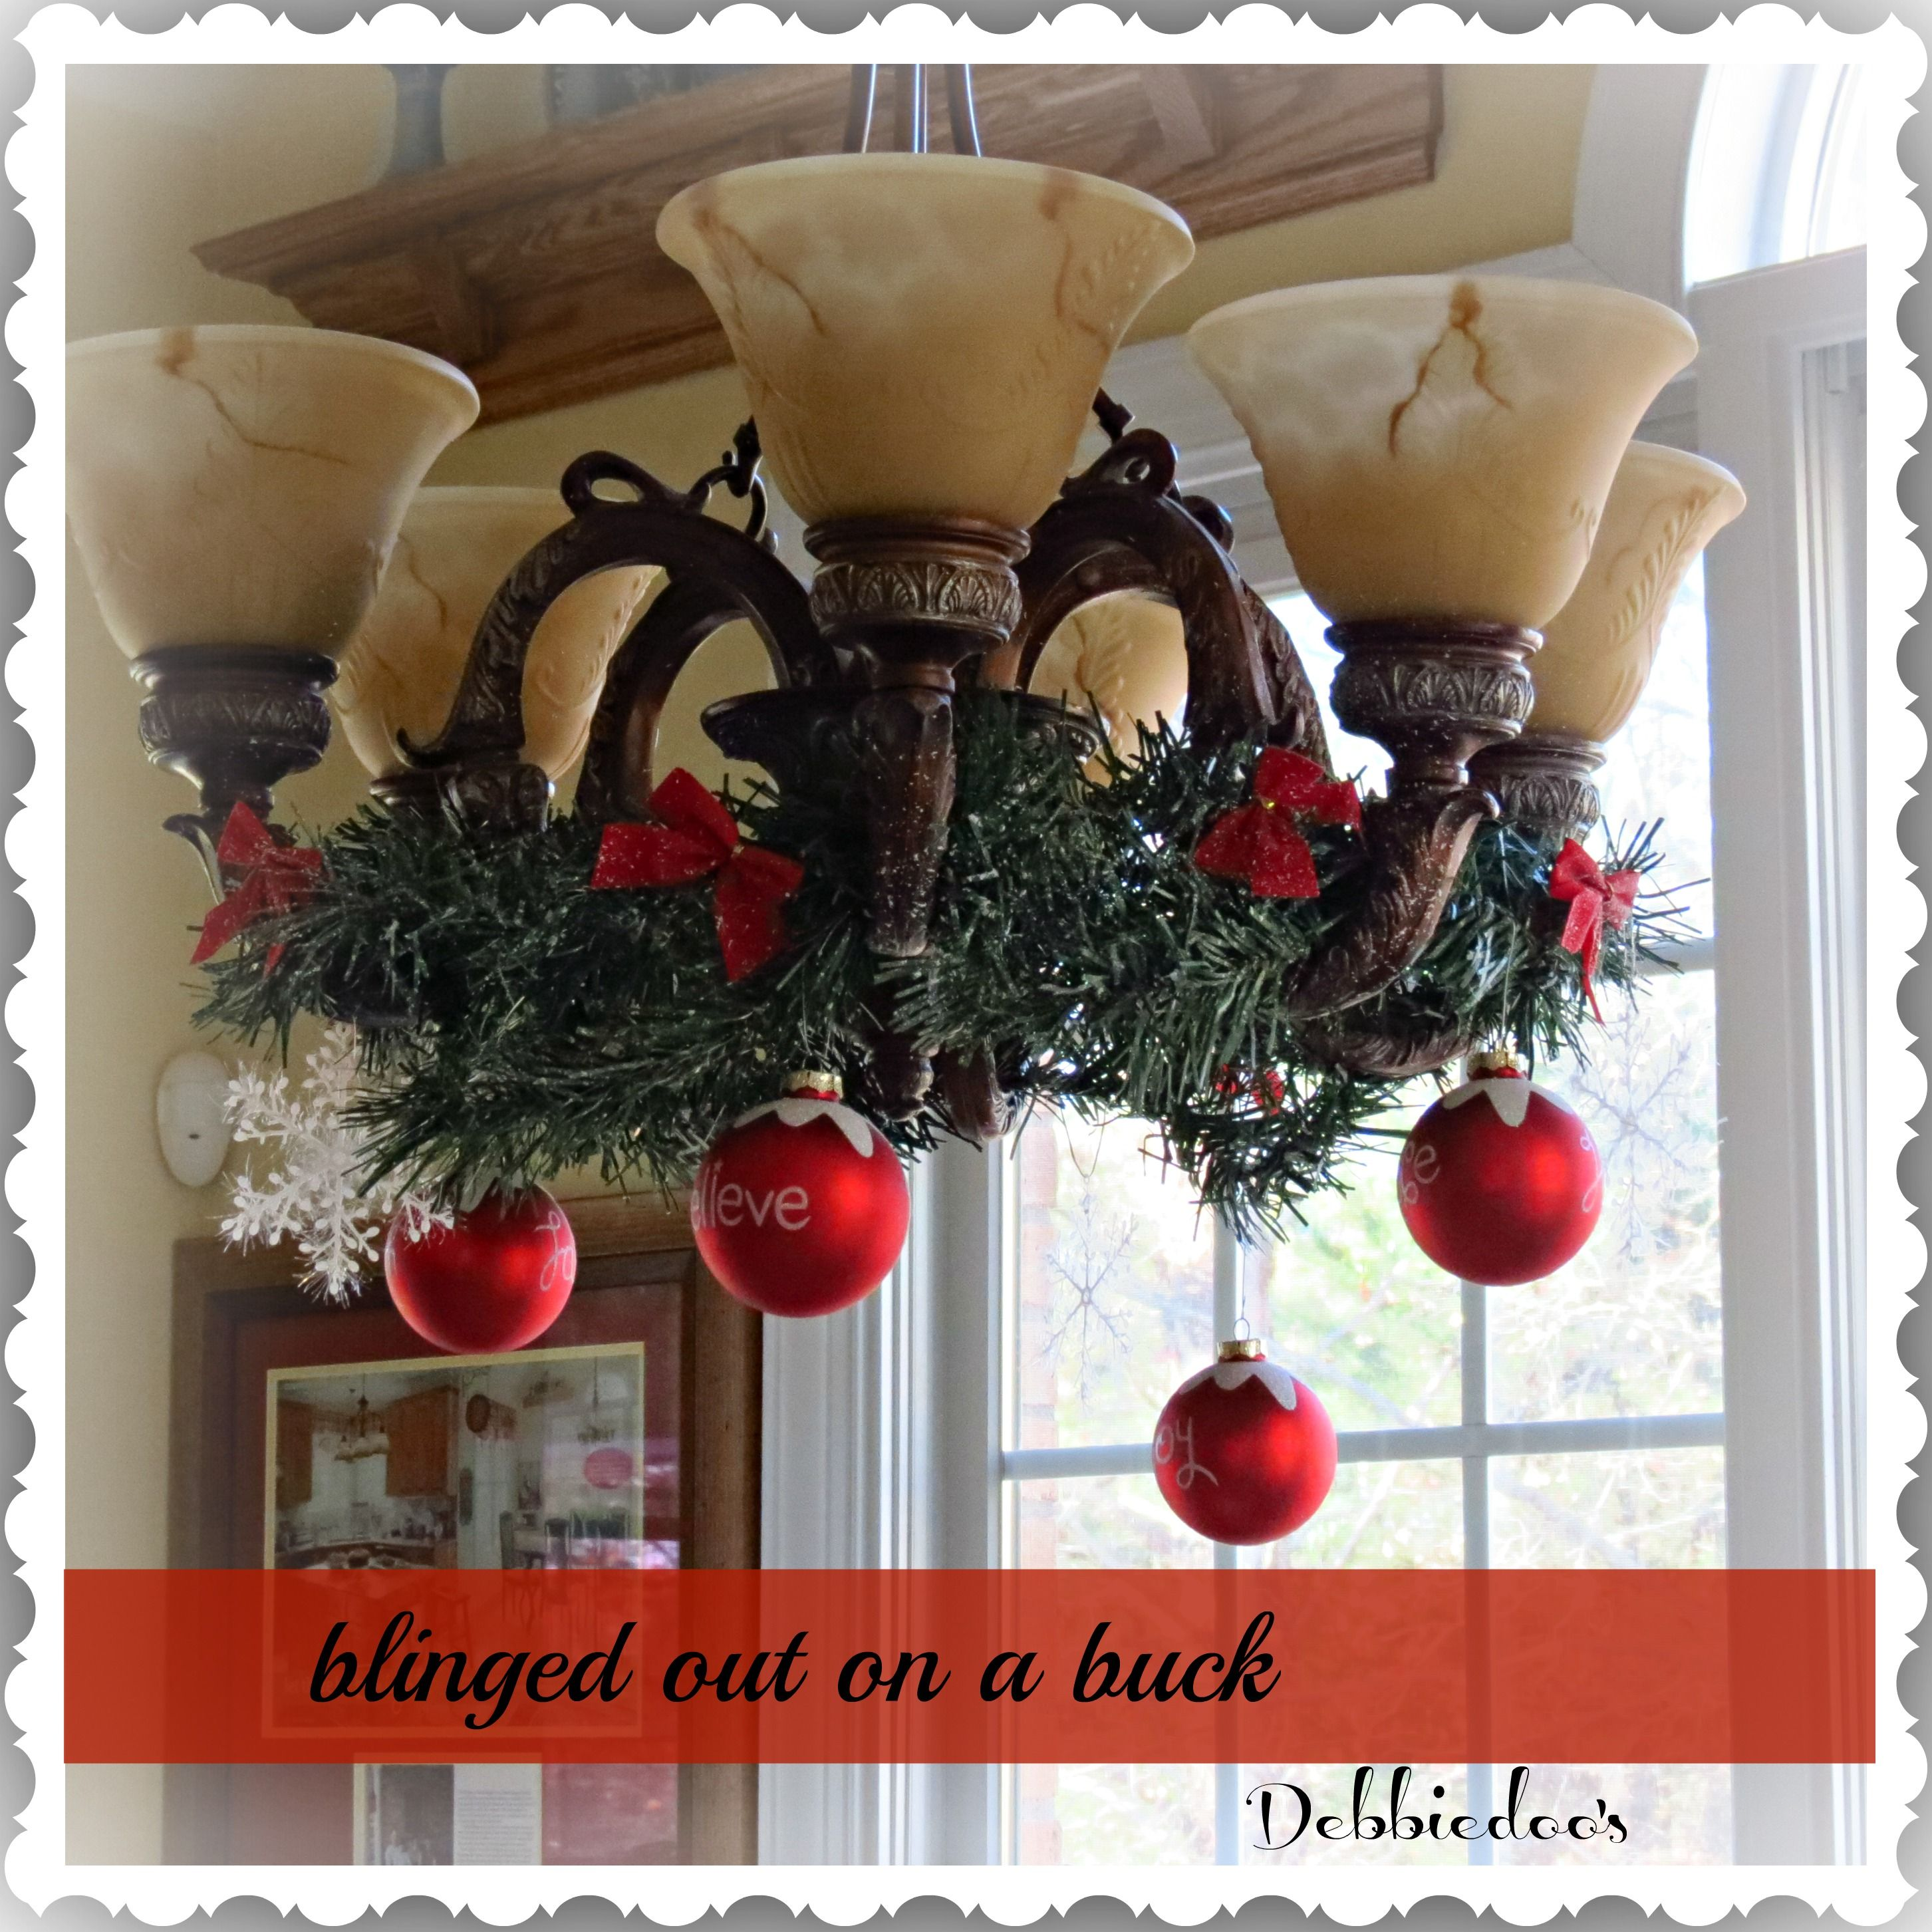 Budget Christmas Decorating Ideas: Holiday Decorating On A Budget - Debbiedoo's